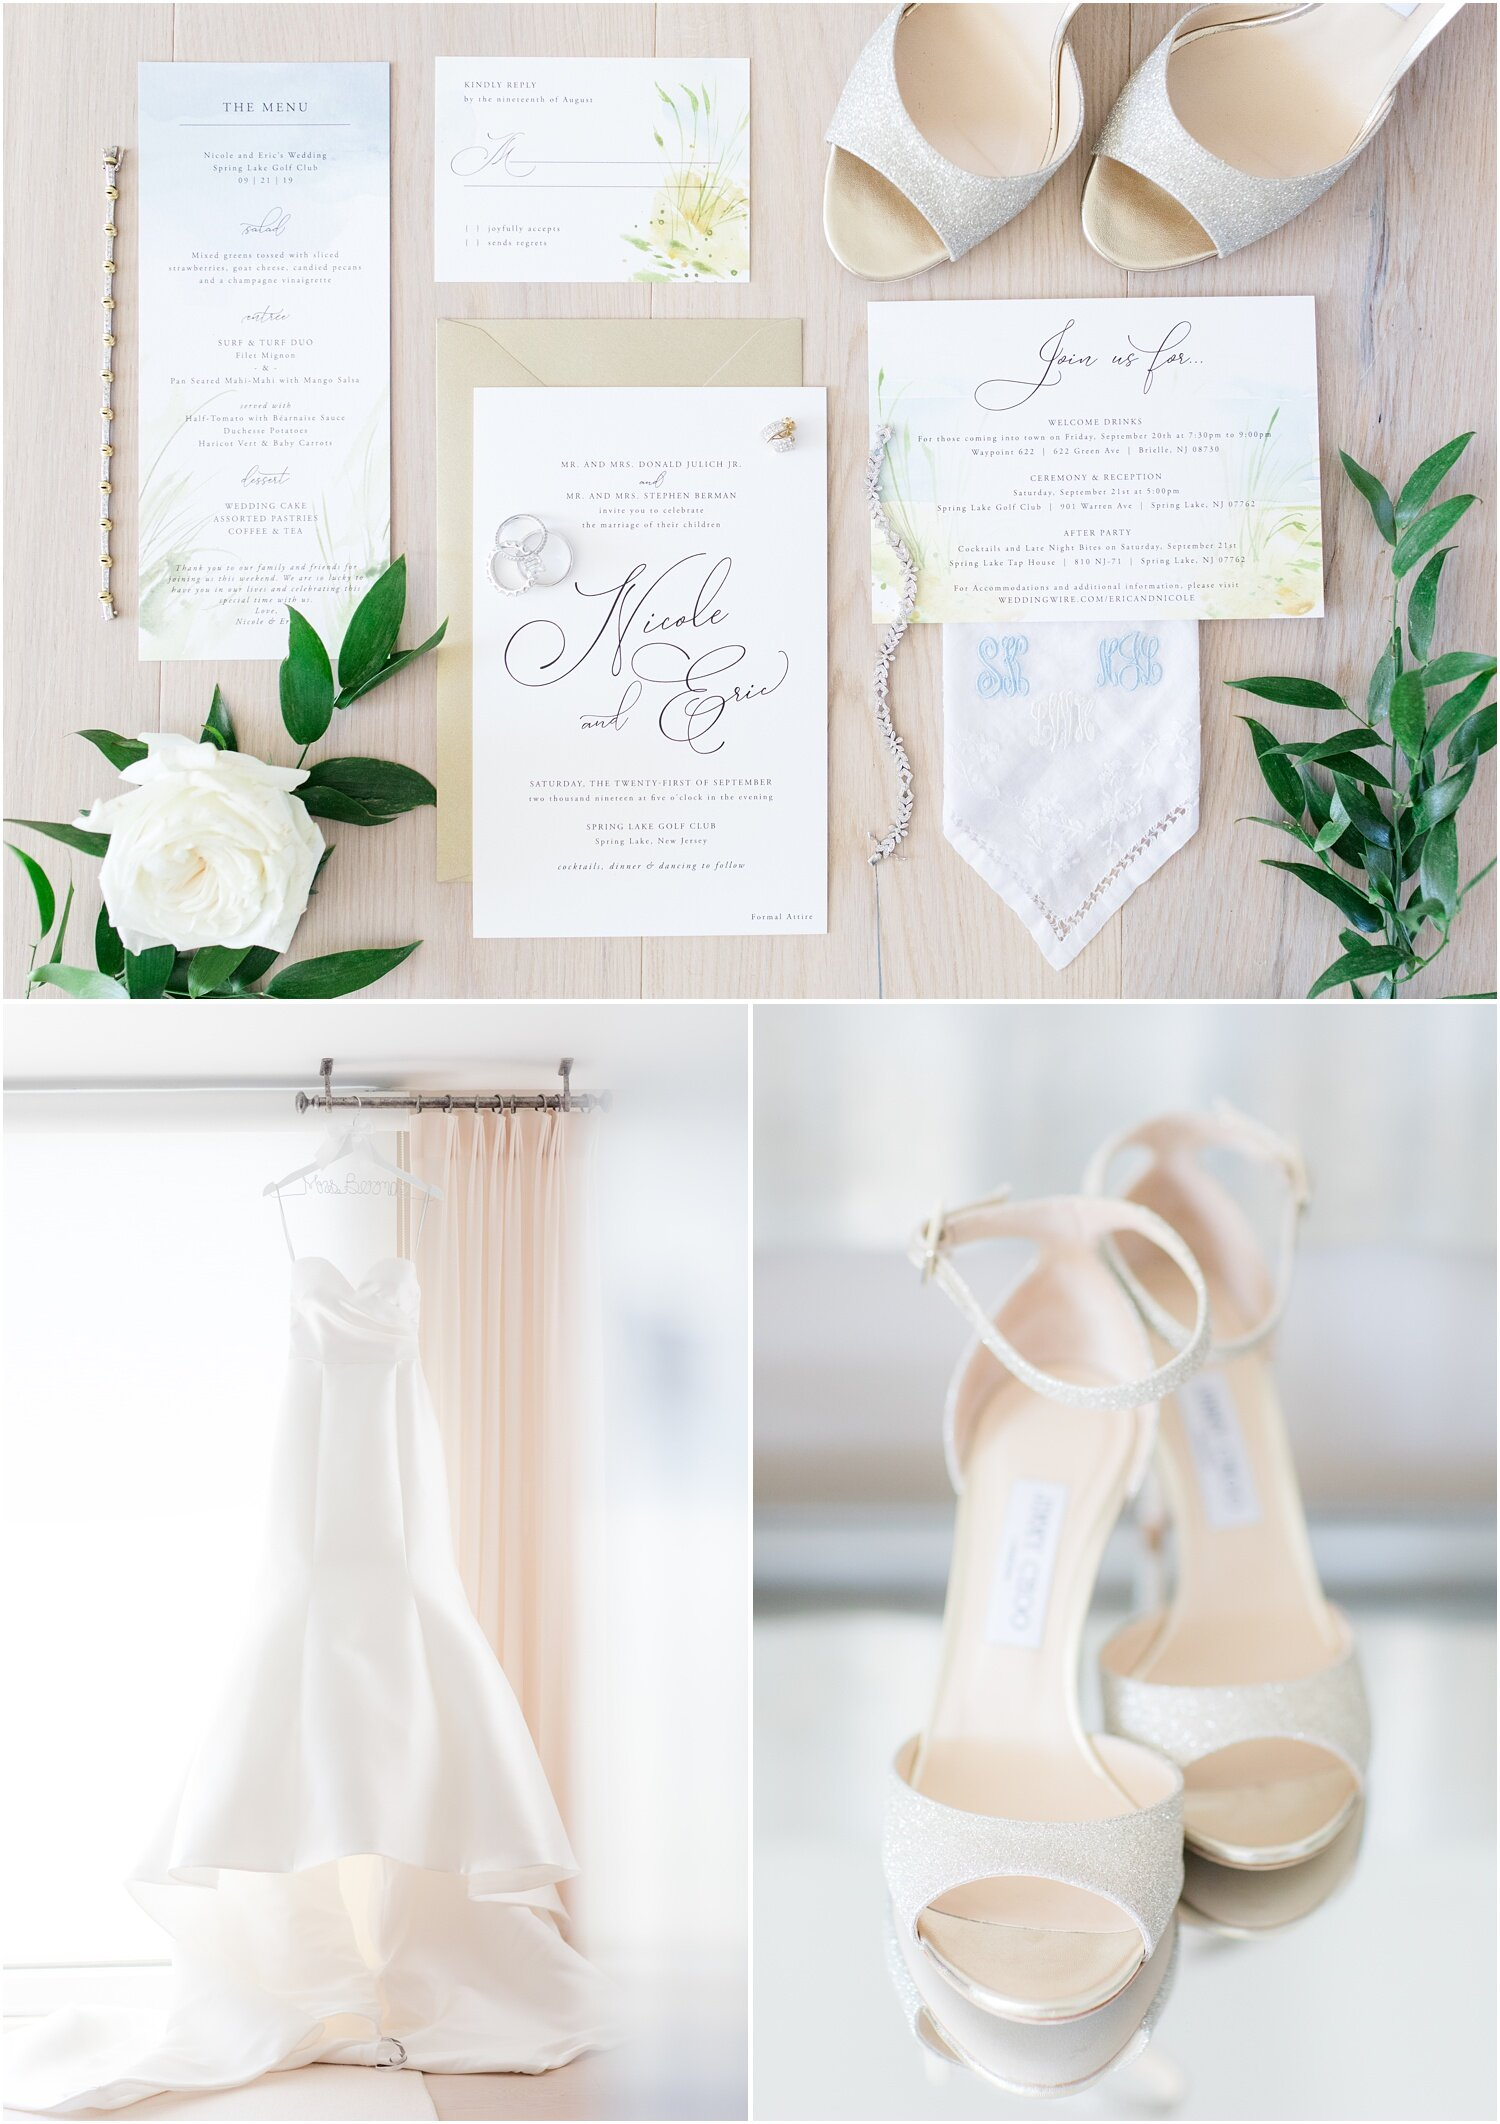 Simple classic wedding invitations with shoes, rings, Monique Lhuillier wedding dress, Jimmy Choo shoes and loose flowers.